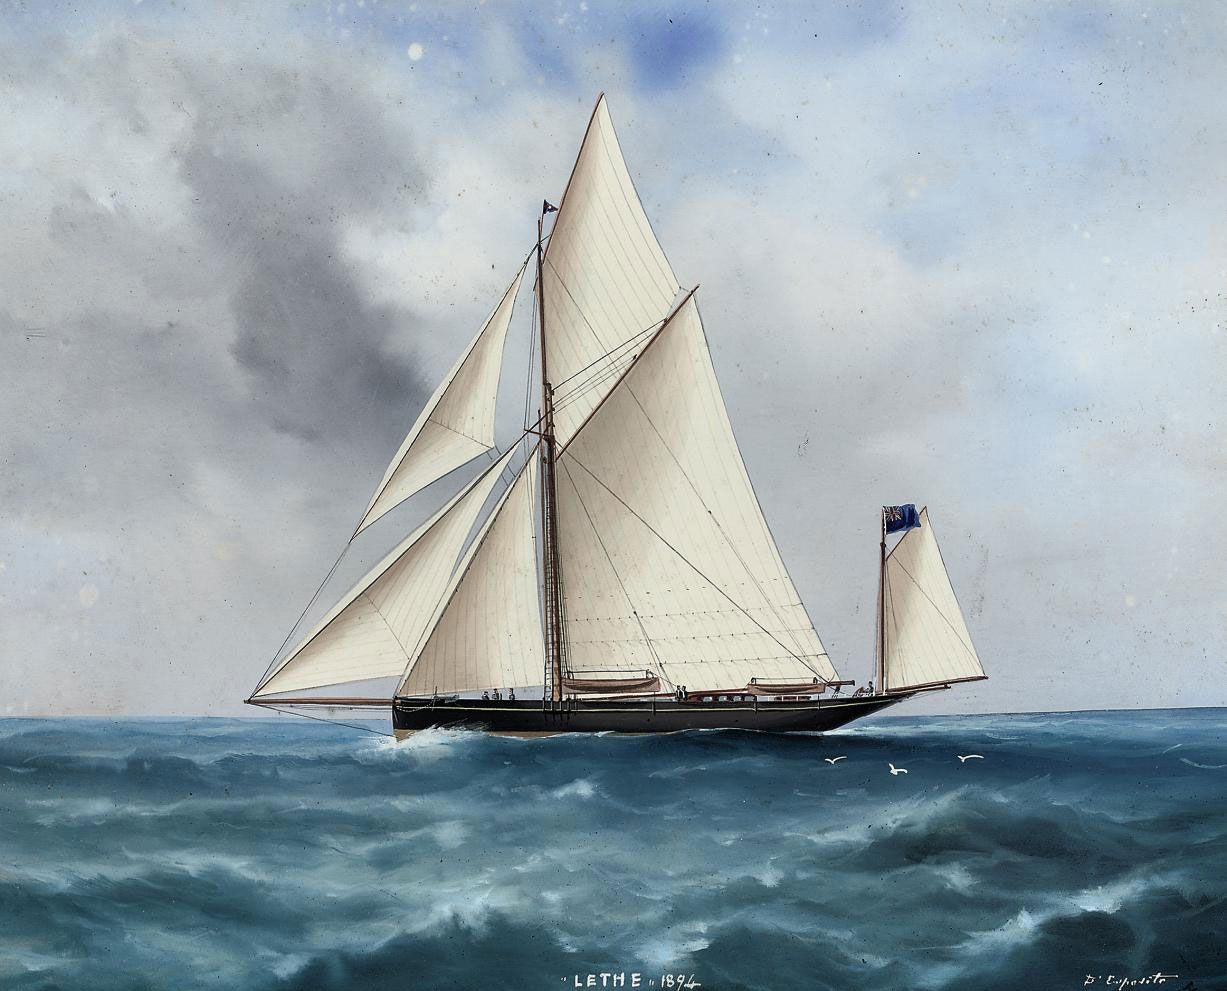 The racing yawl Lethe under full canvas (illustrated); and The racing yawl Lethe under reduced sail